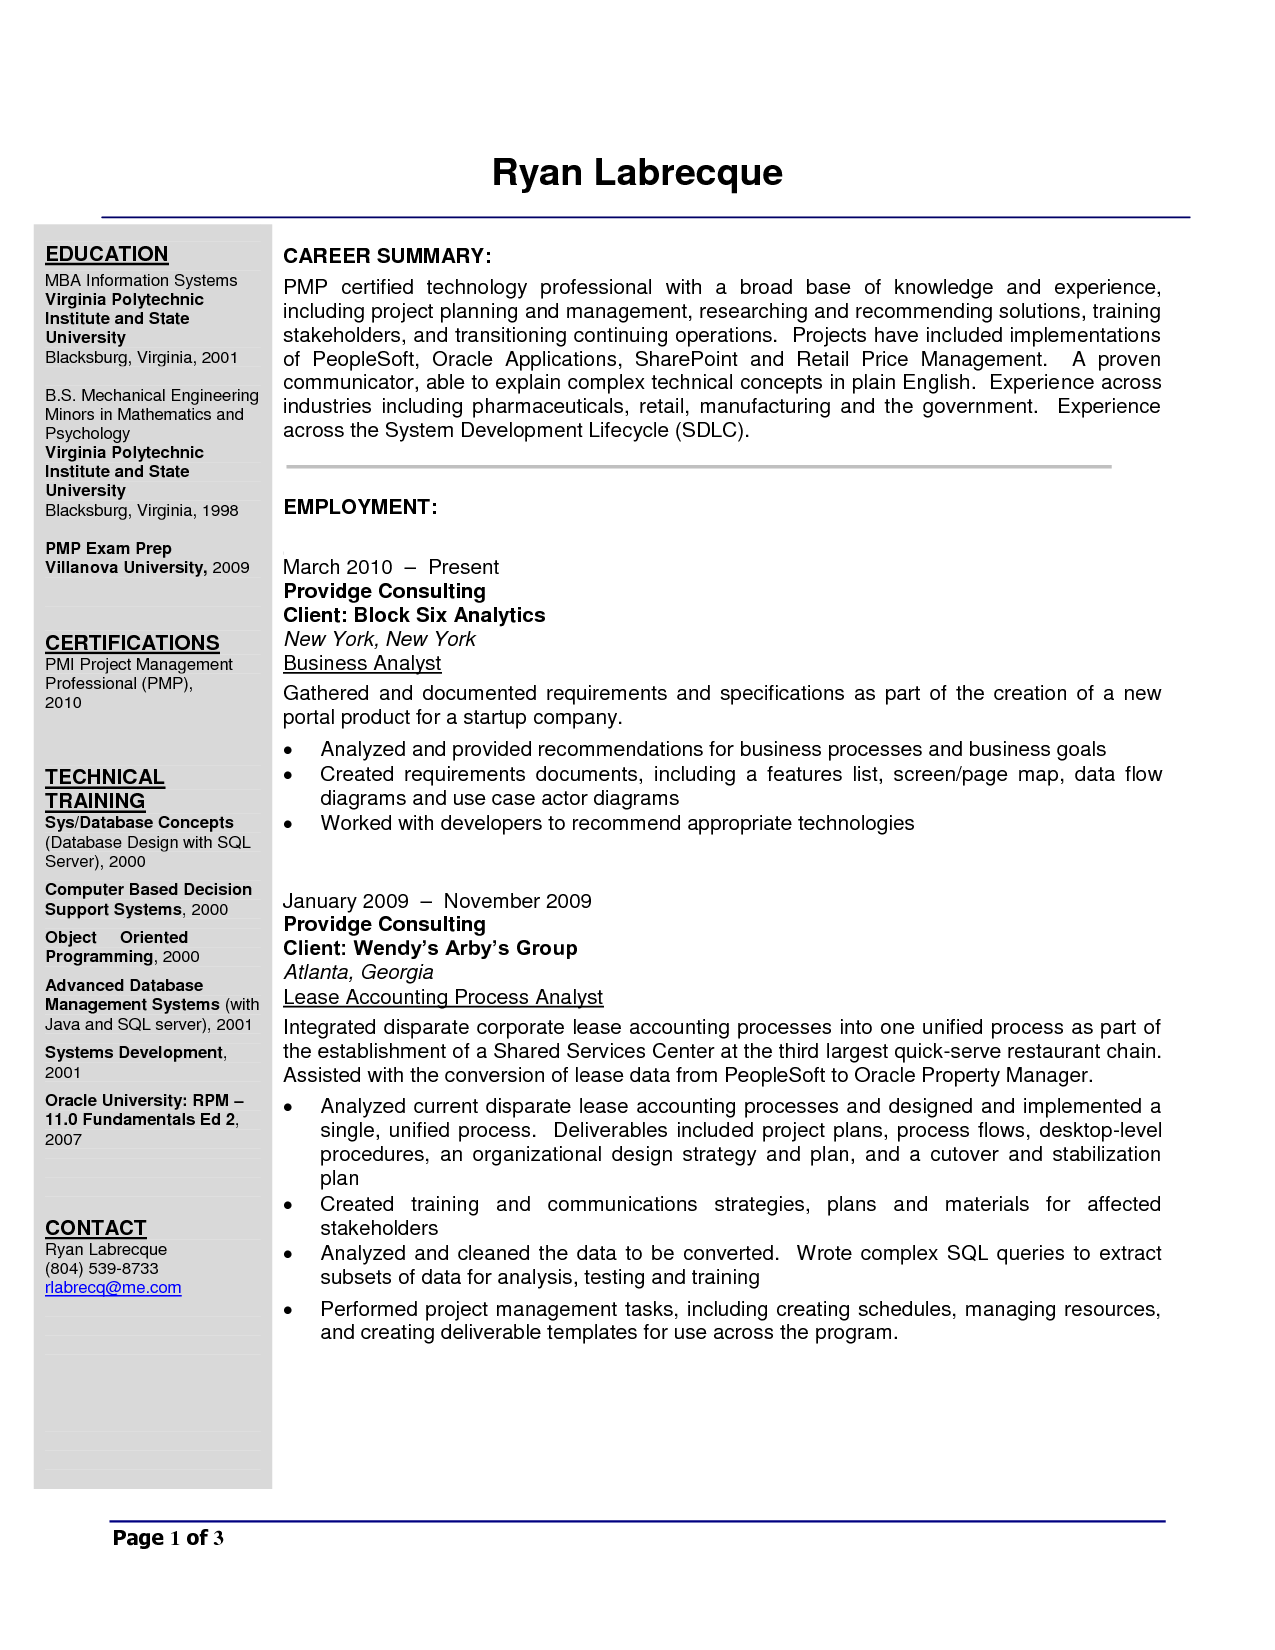 business analyst resume business analyst resume templates business analyst resume sample doc by ryan labrecque - Business Consultant Resume Sample